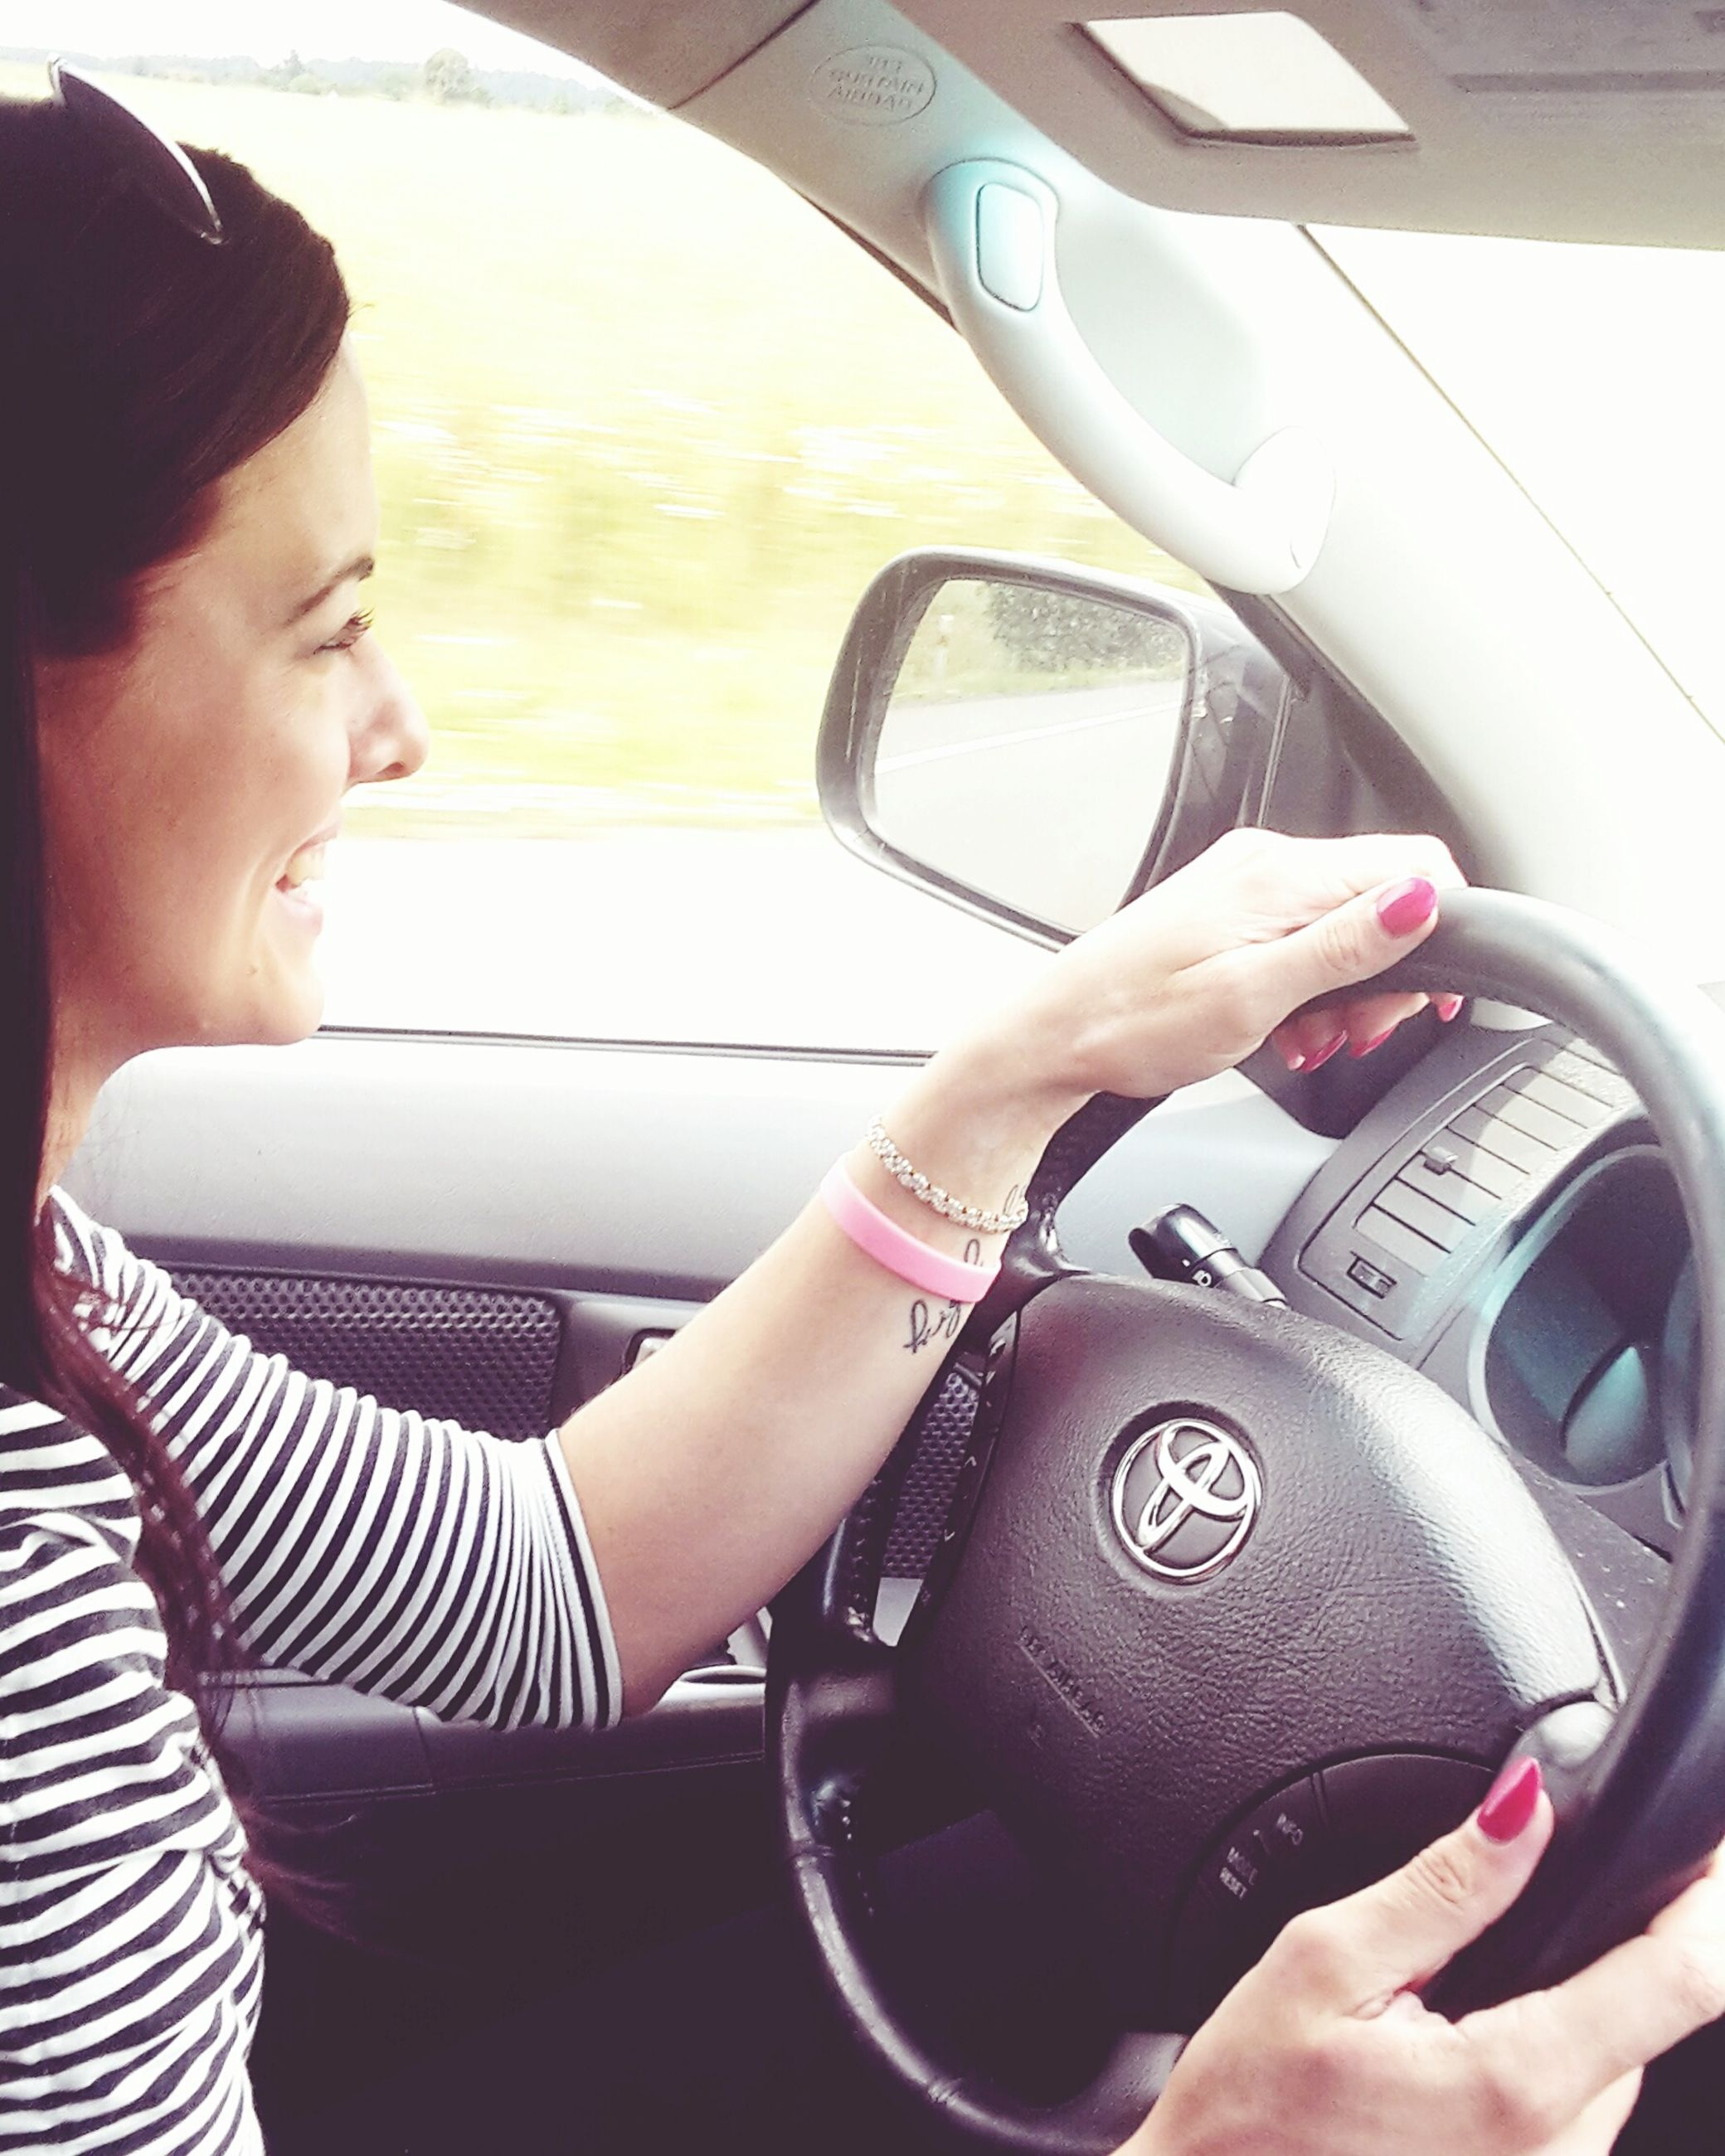 lifestyles, leisure activity, person, indoors, holding, young adult, sitting, technology, casual clothing, wireless technology, smart phone, vehicle interior, young women, communication, mobile phone, front view